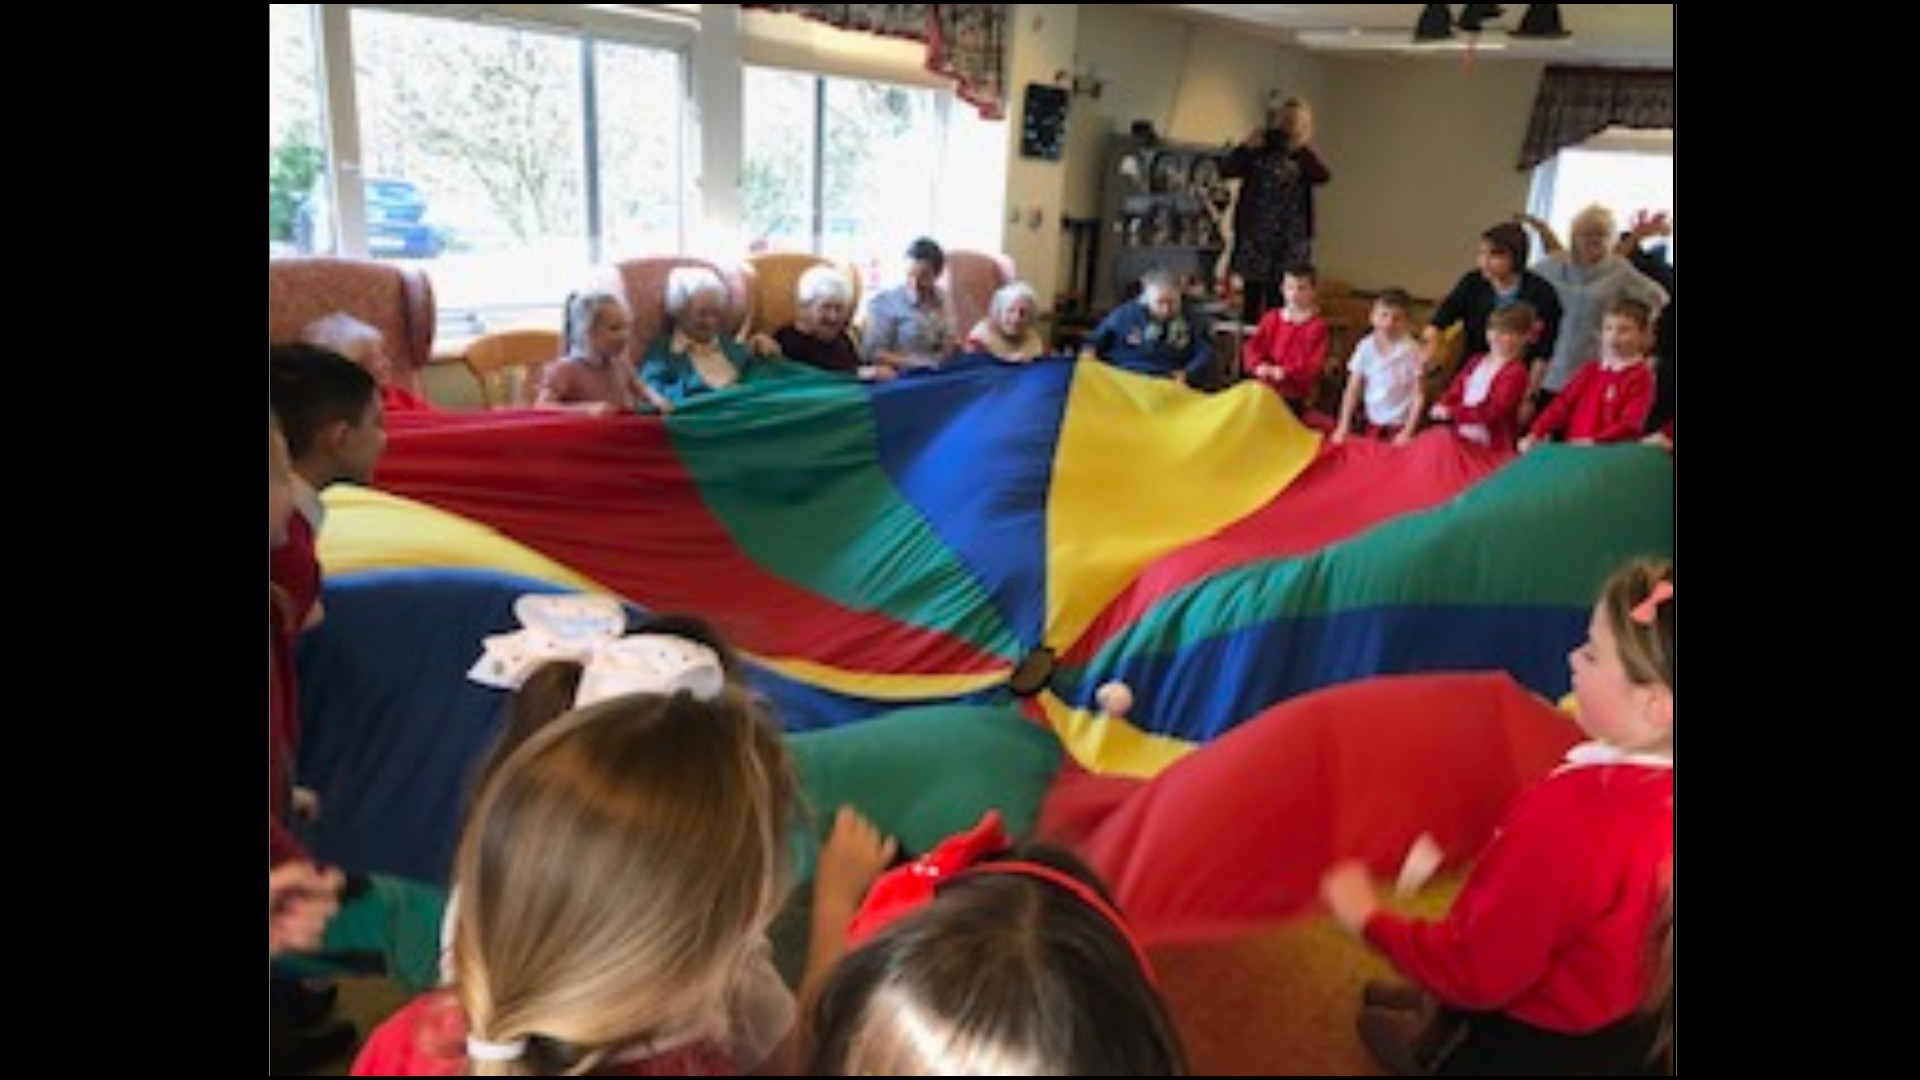 Children from Ysgol Y Parc have formed a firm friendship with the Dolwen Day Care centre in Denbigh